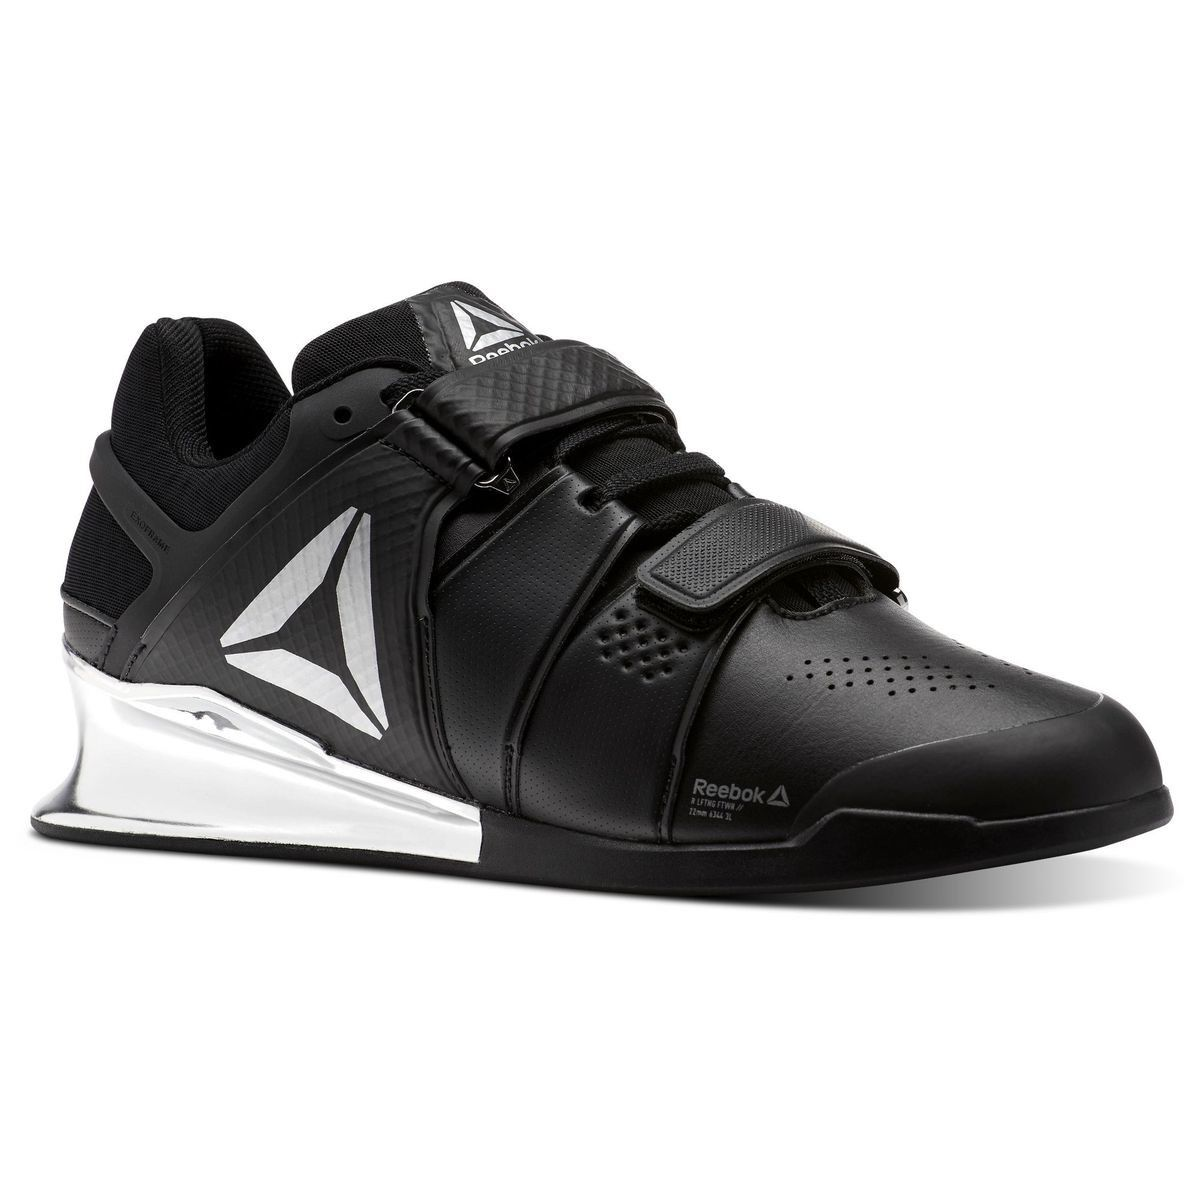 new product 77a8b f483d Reebok Legacy Lifter - Taille   42 45